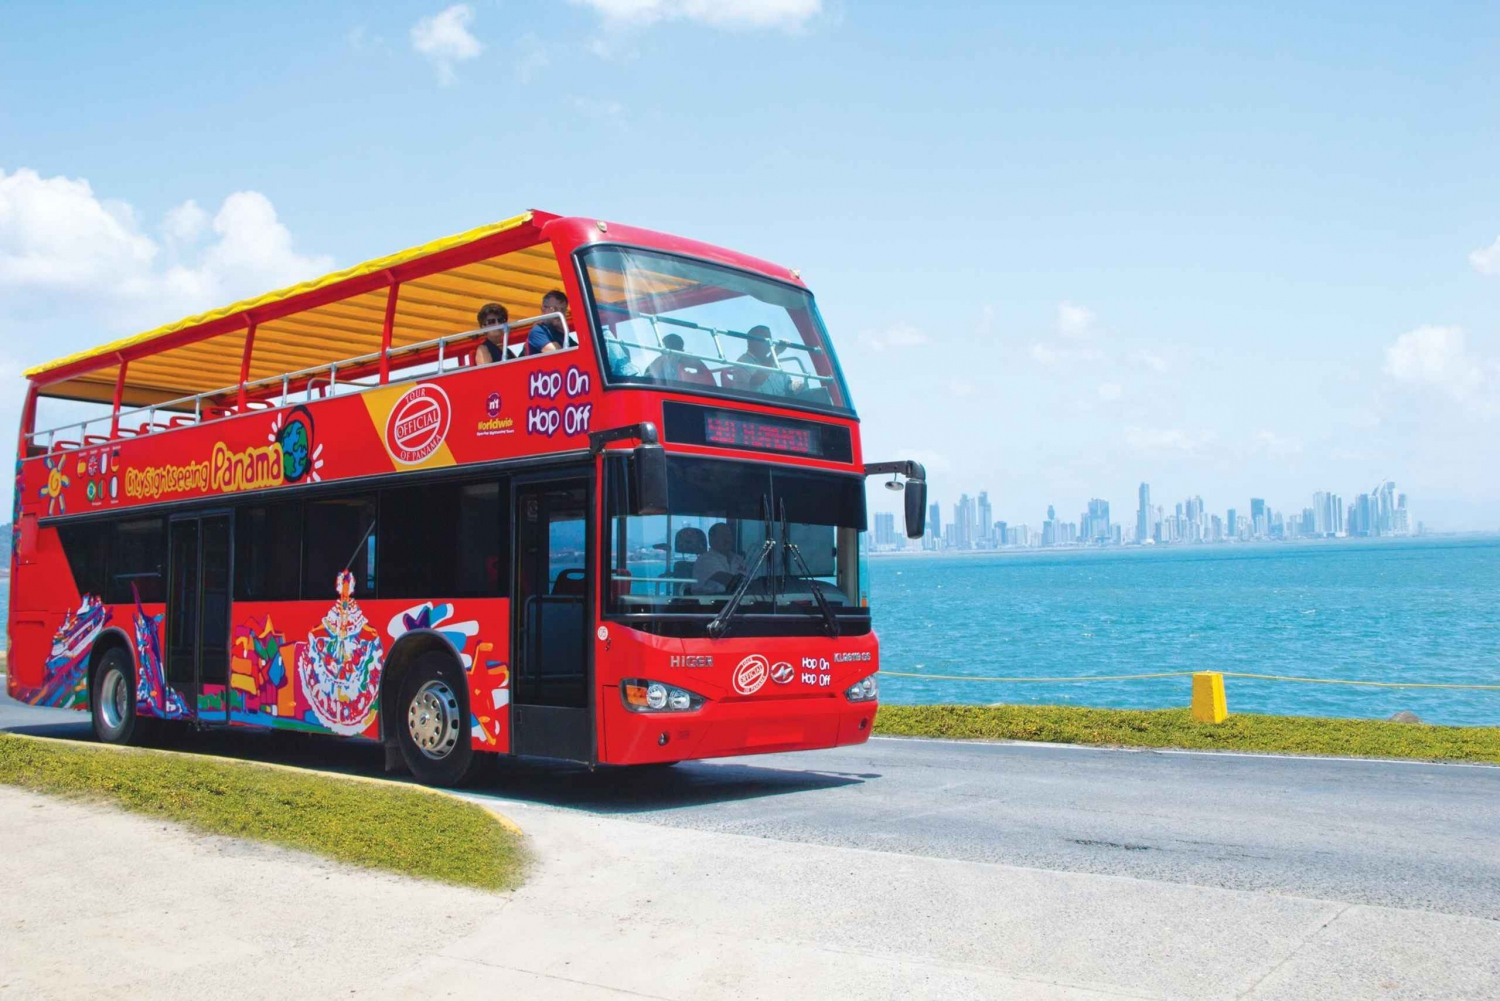 Panama City: Hop-On Hop-Off Sightseeing Bus